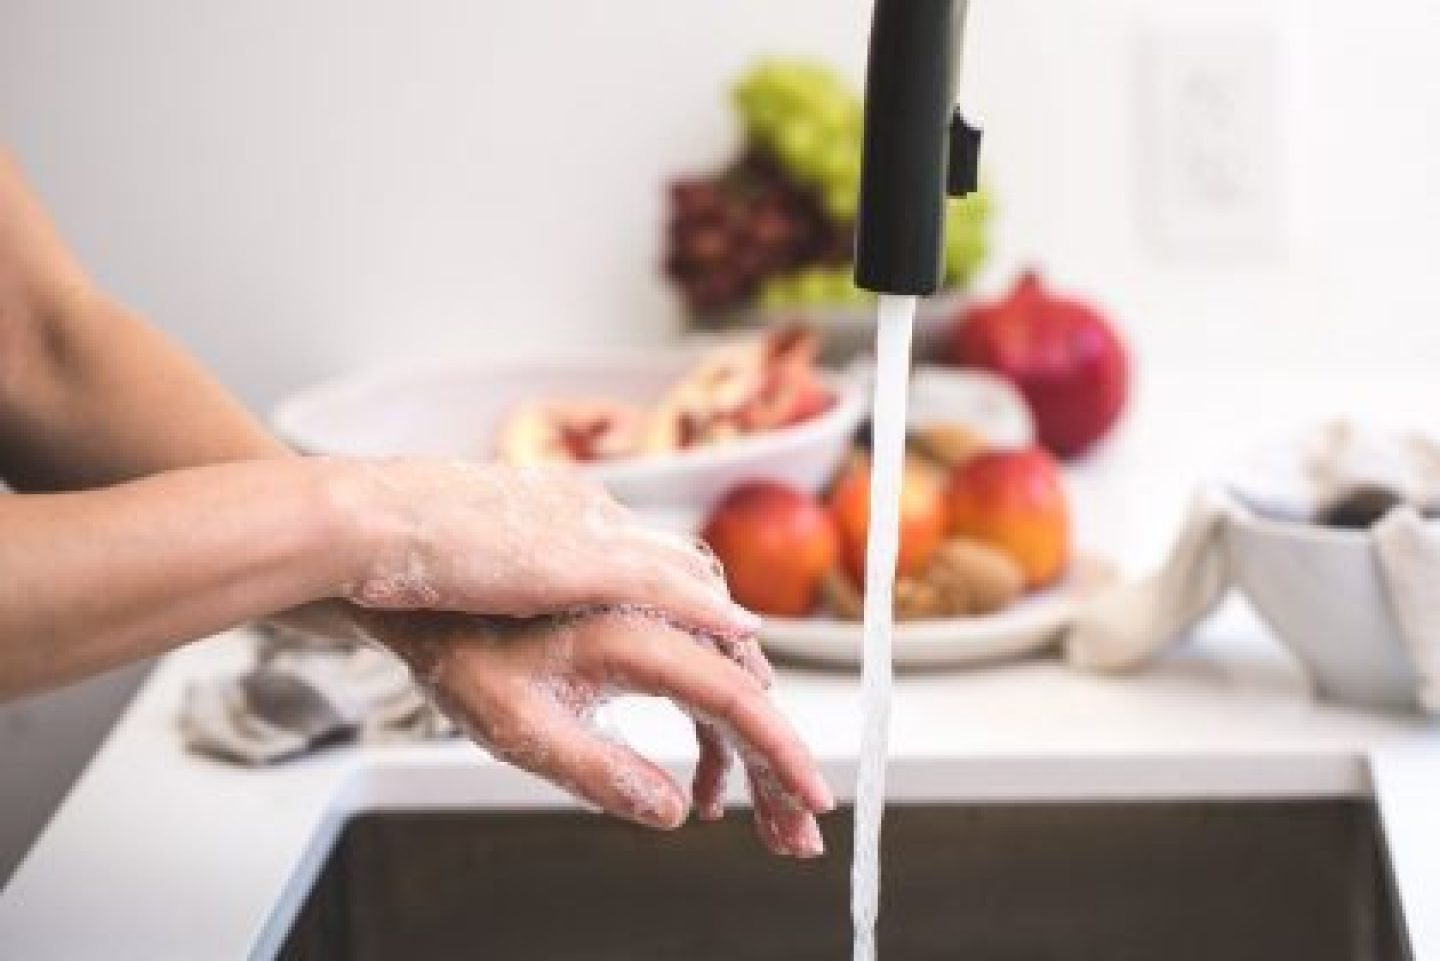 If you're looking to reduce not only your electricity bill but also your water bill, try purchasing some low flow faucets. These are designed to limit water wastage, as they only release what is necessary. If you have old taps in your house, it can certainly be worth making the swap.